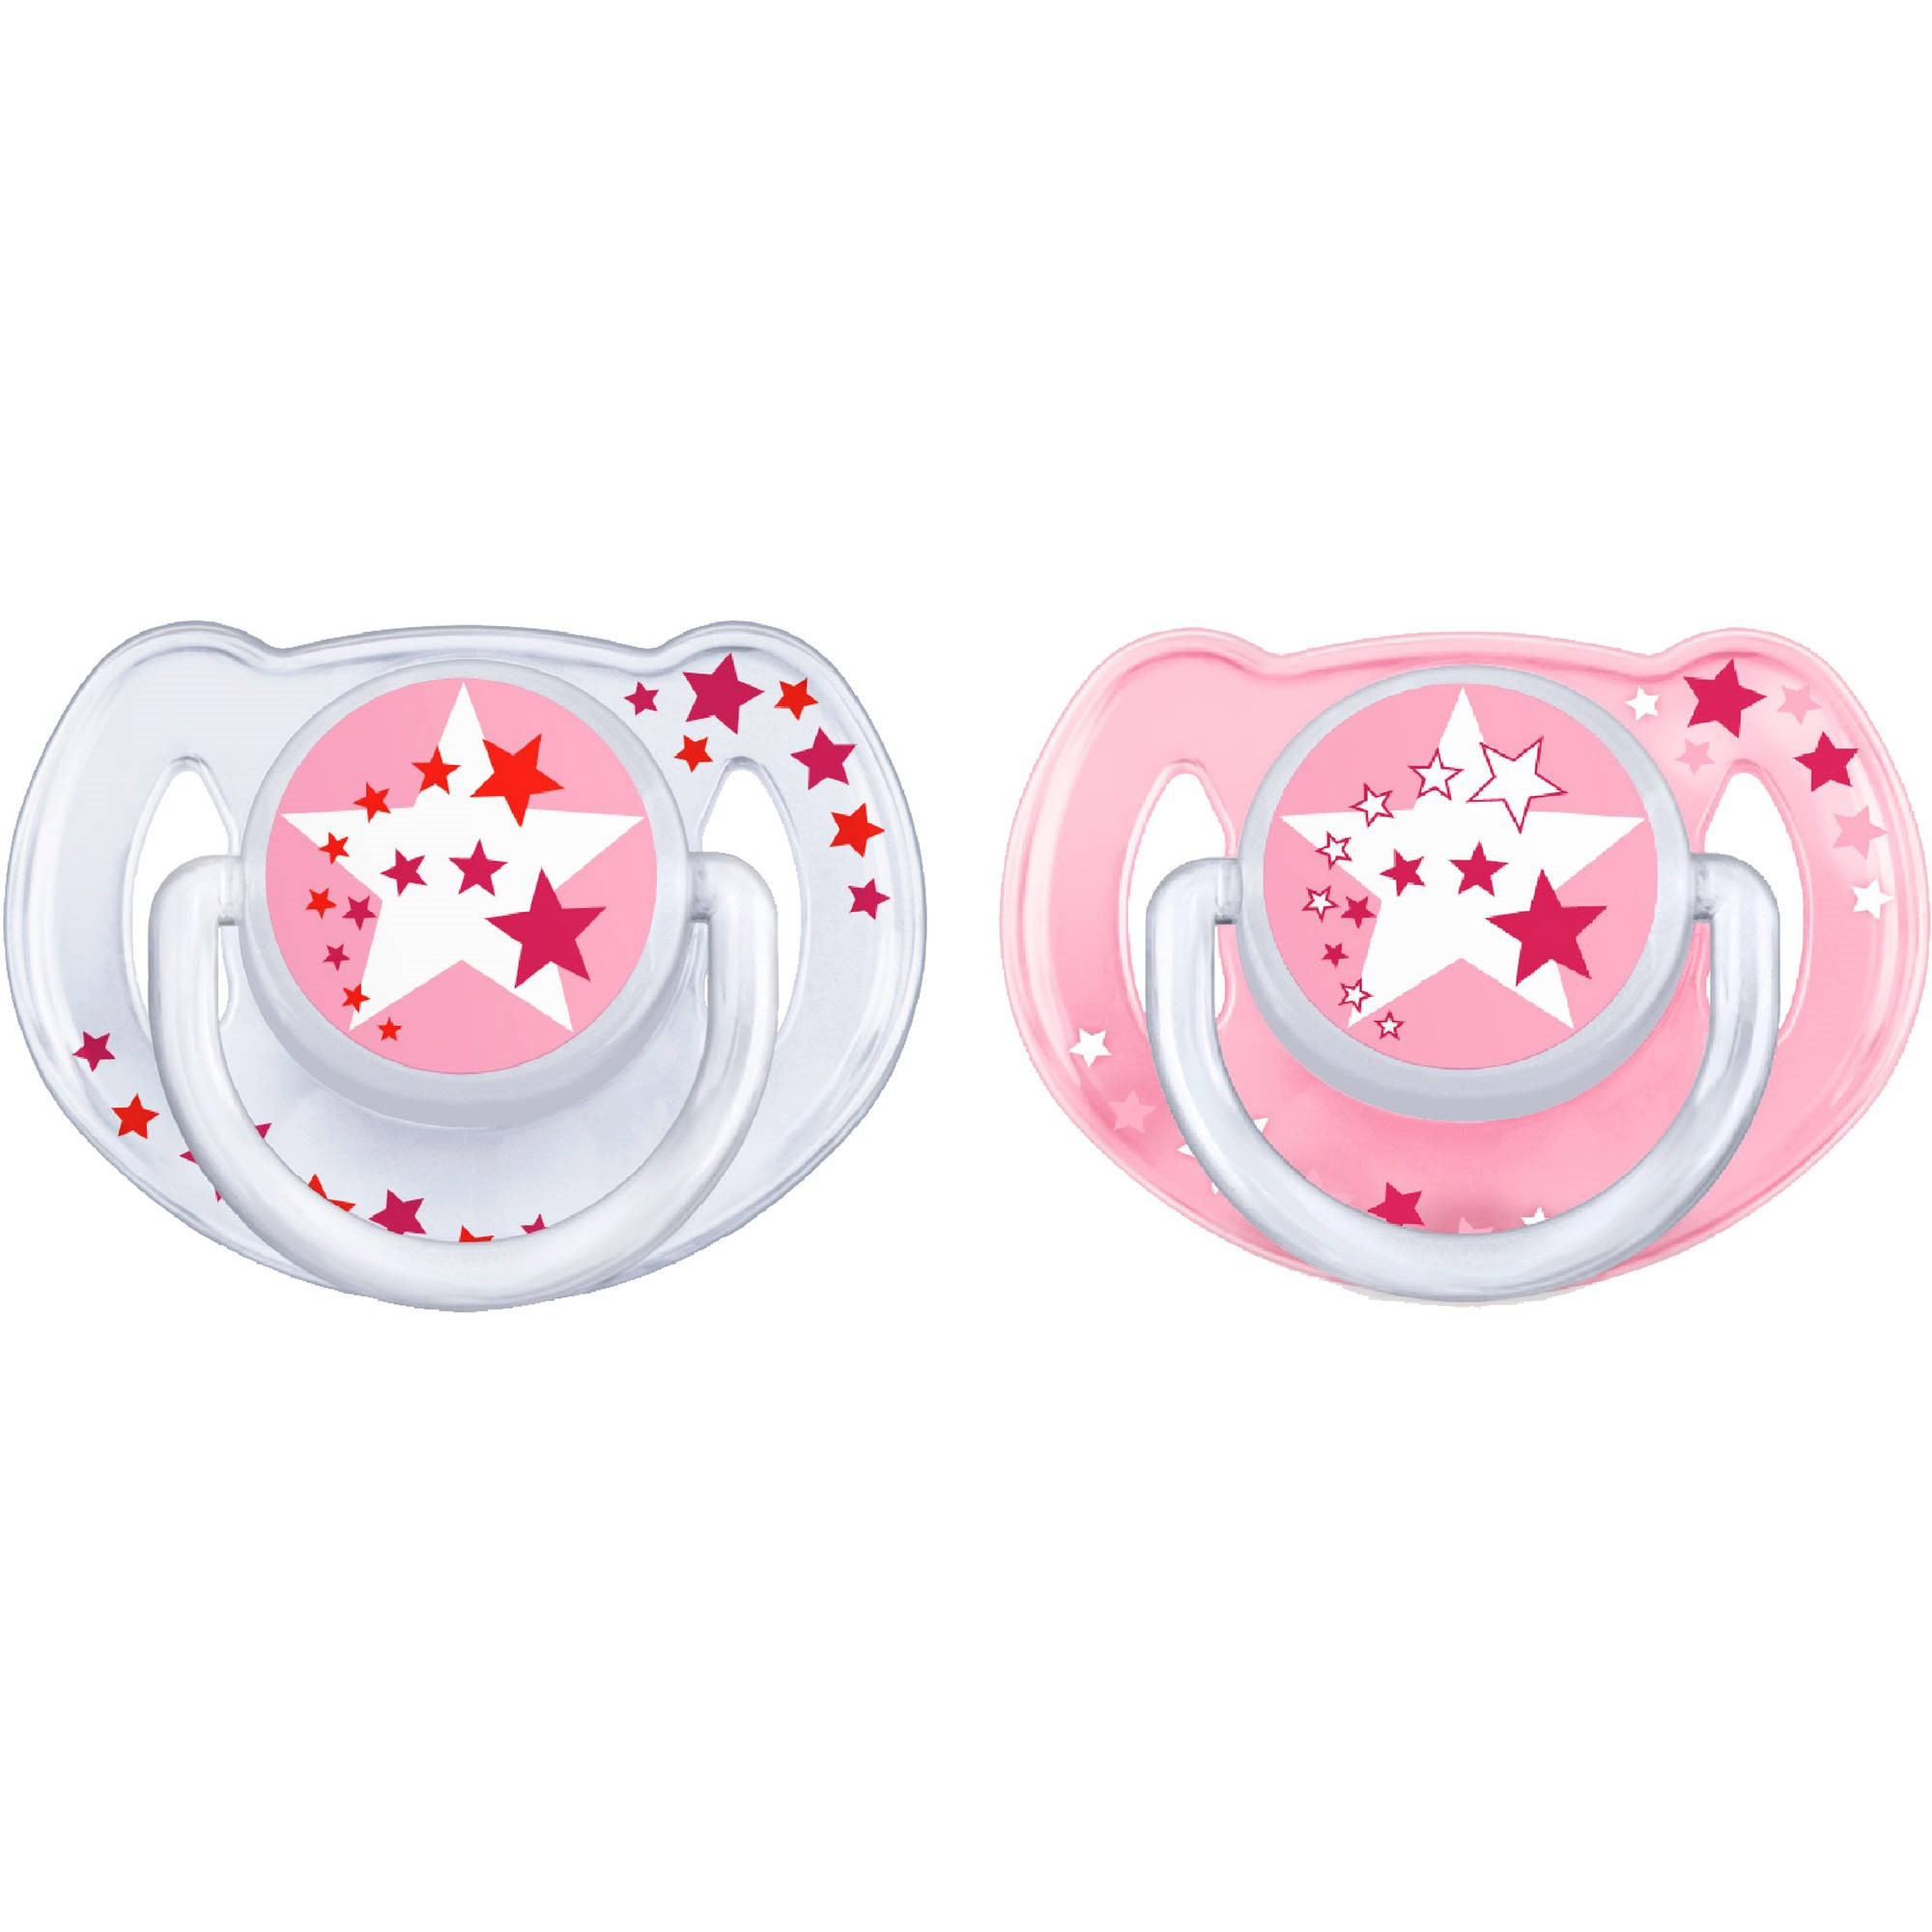 Philips Avent Glow in the Dark Orthodontic Pacifier, 6-18 months, Pink, 2 pack, SCF176/24